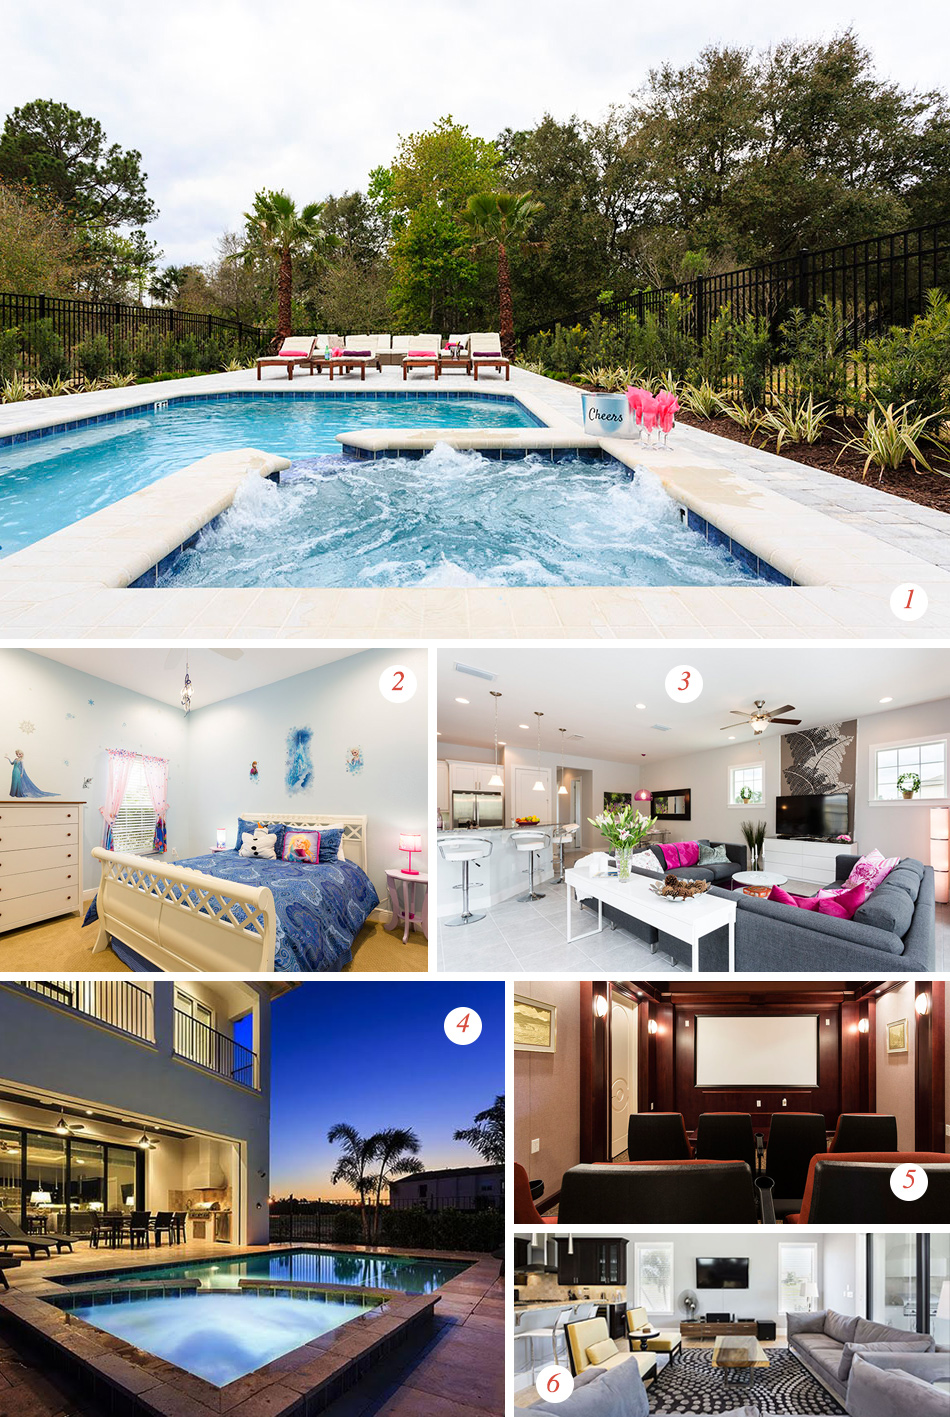 best villas for families in orlando | Complete Guide to Disneyworld with Babies and Toddlers